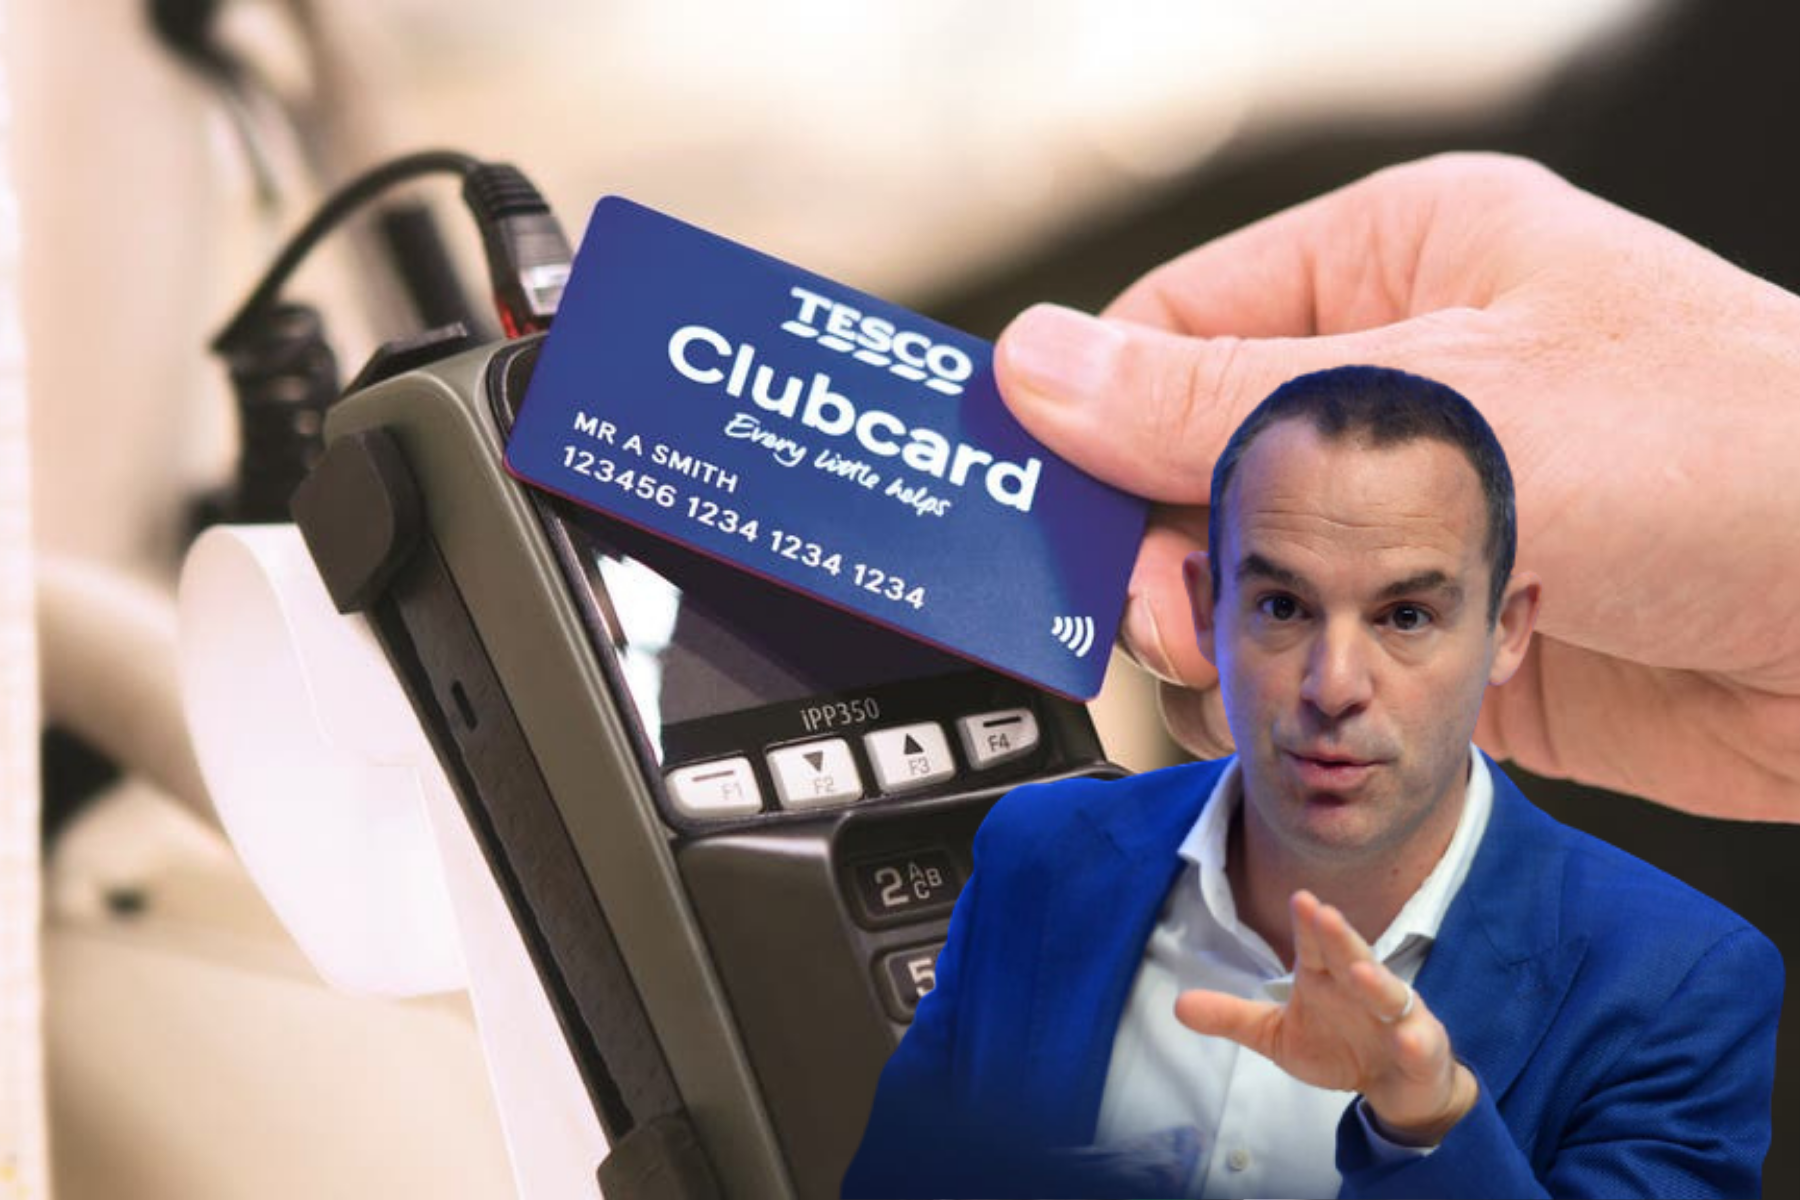 Martin Lewis issues urgent warning over Tesco Clubcard scheme ending today